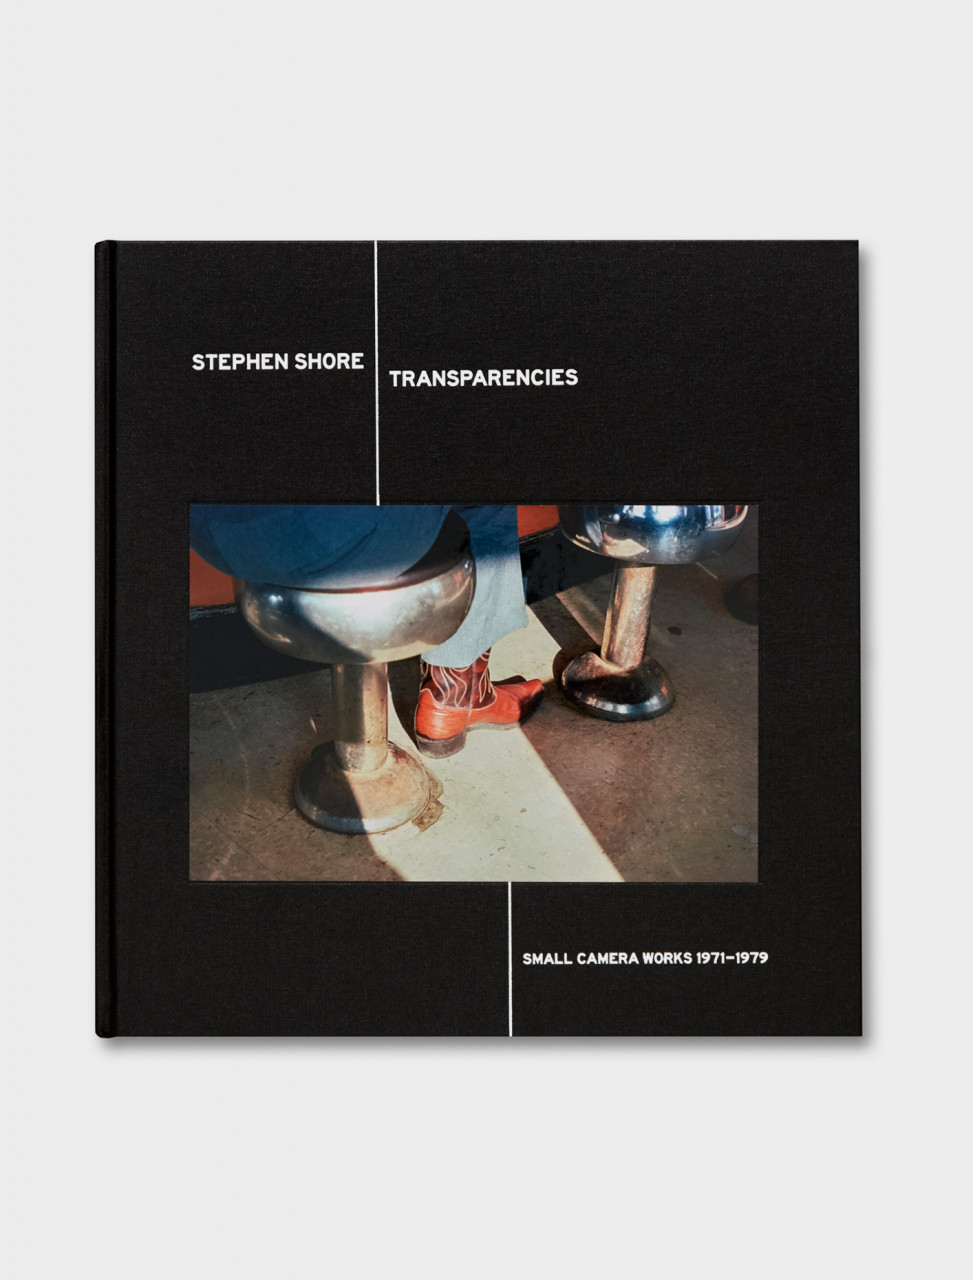 Transparencies: Small Camera Works 1971-1979 - Stephen Shore. Published by Mack Books.